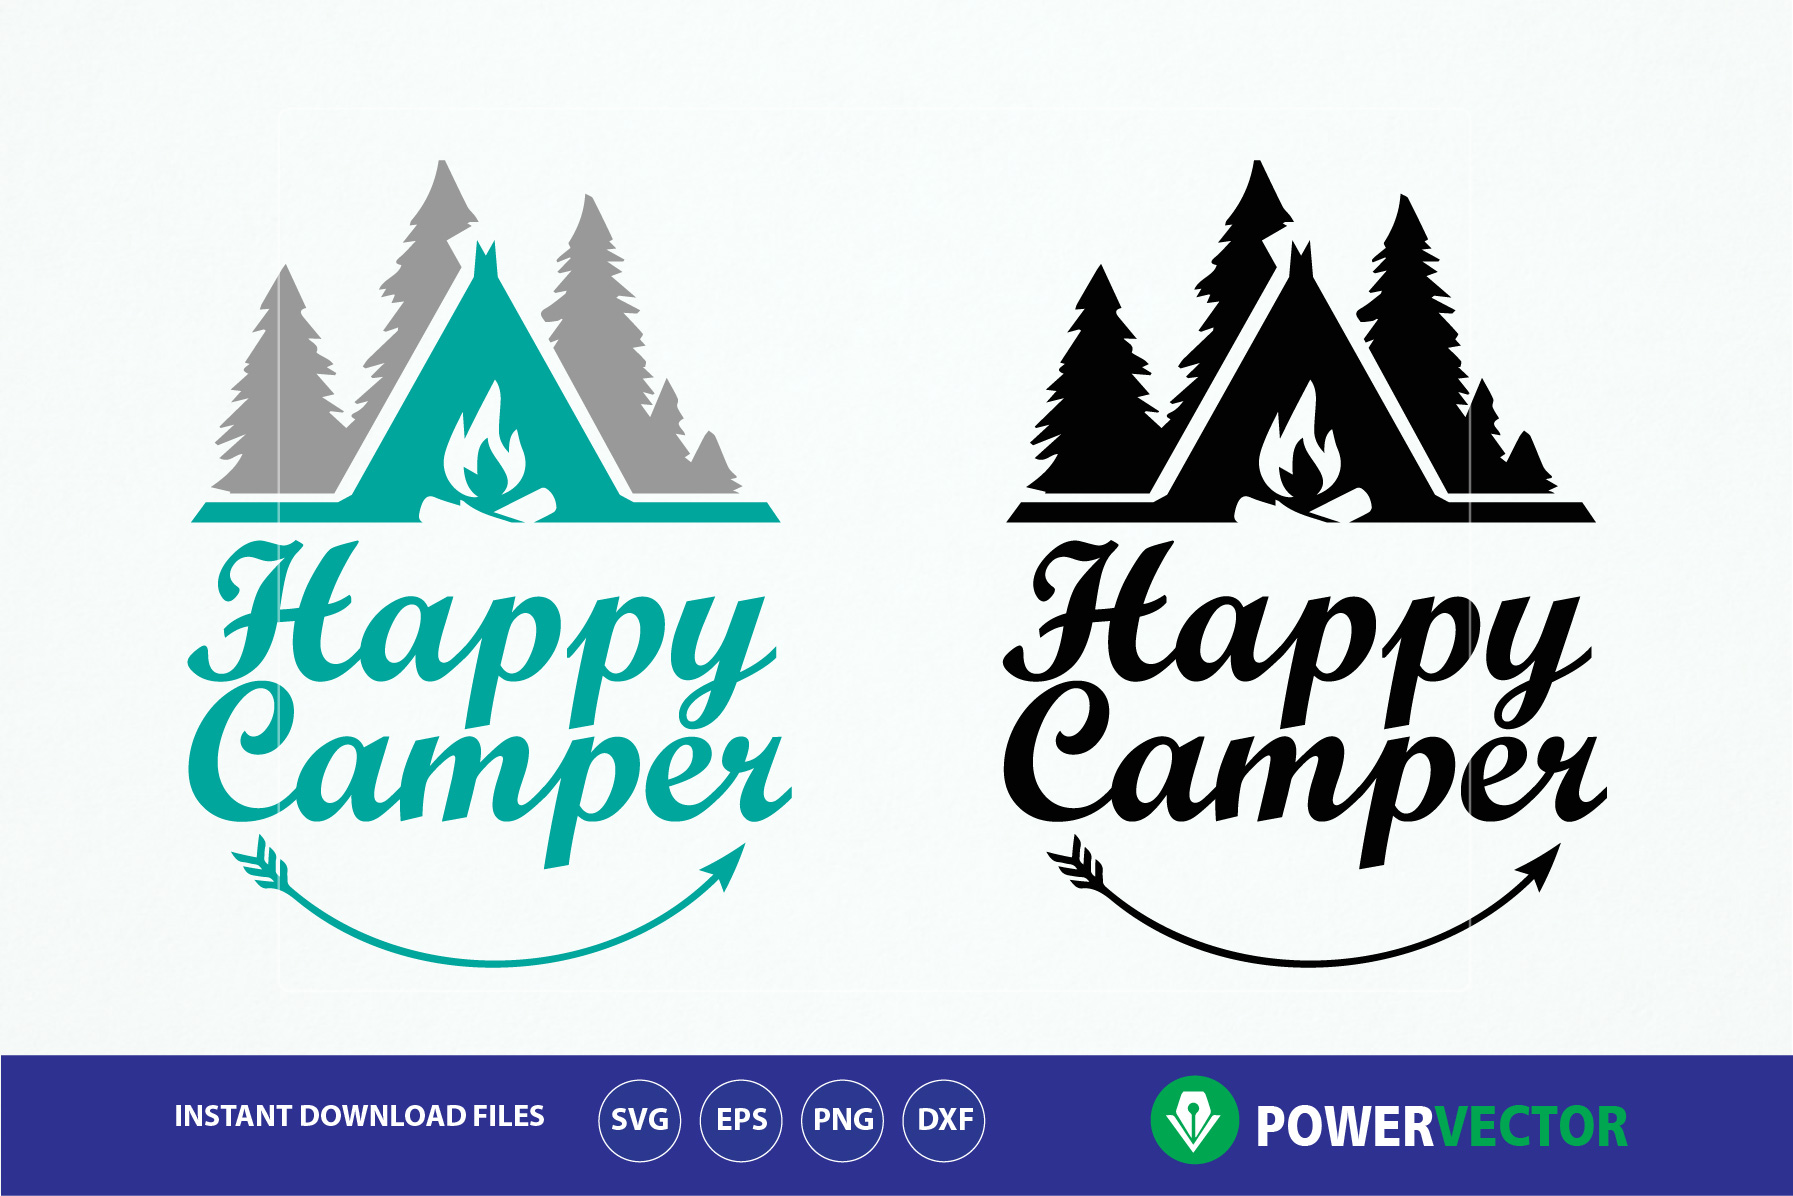 Happy Camper Svg Cutting File Ai Dxf And Png – Fondos de Pantalla